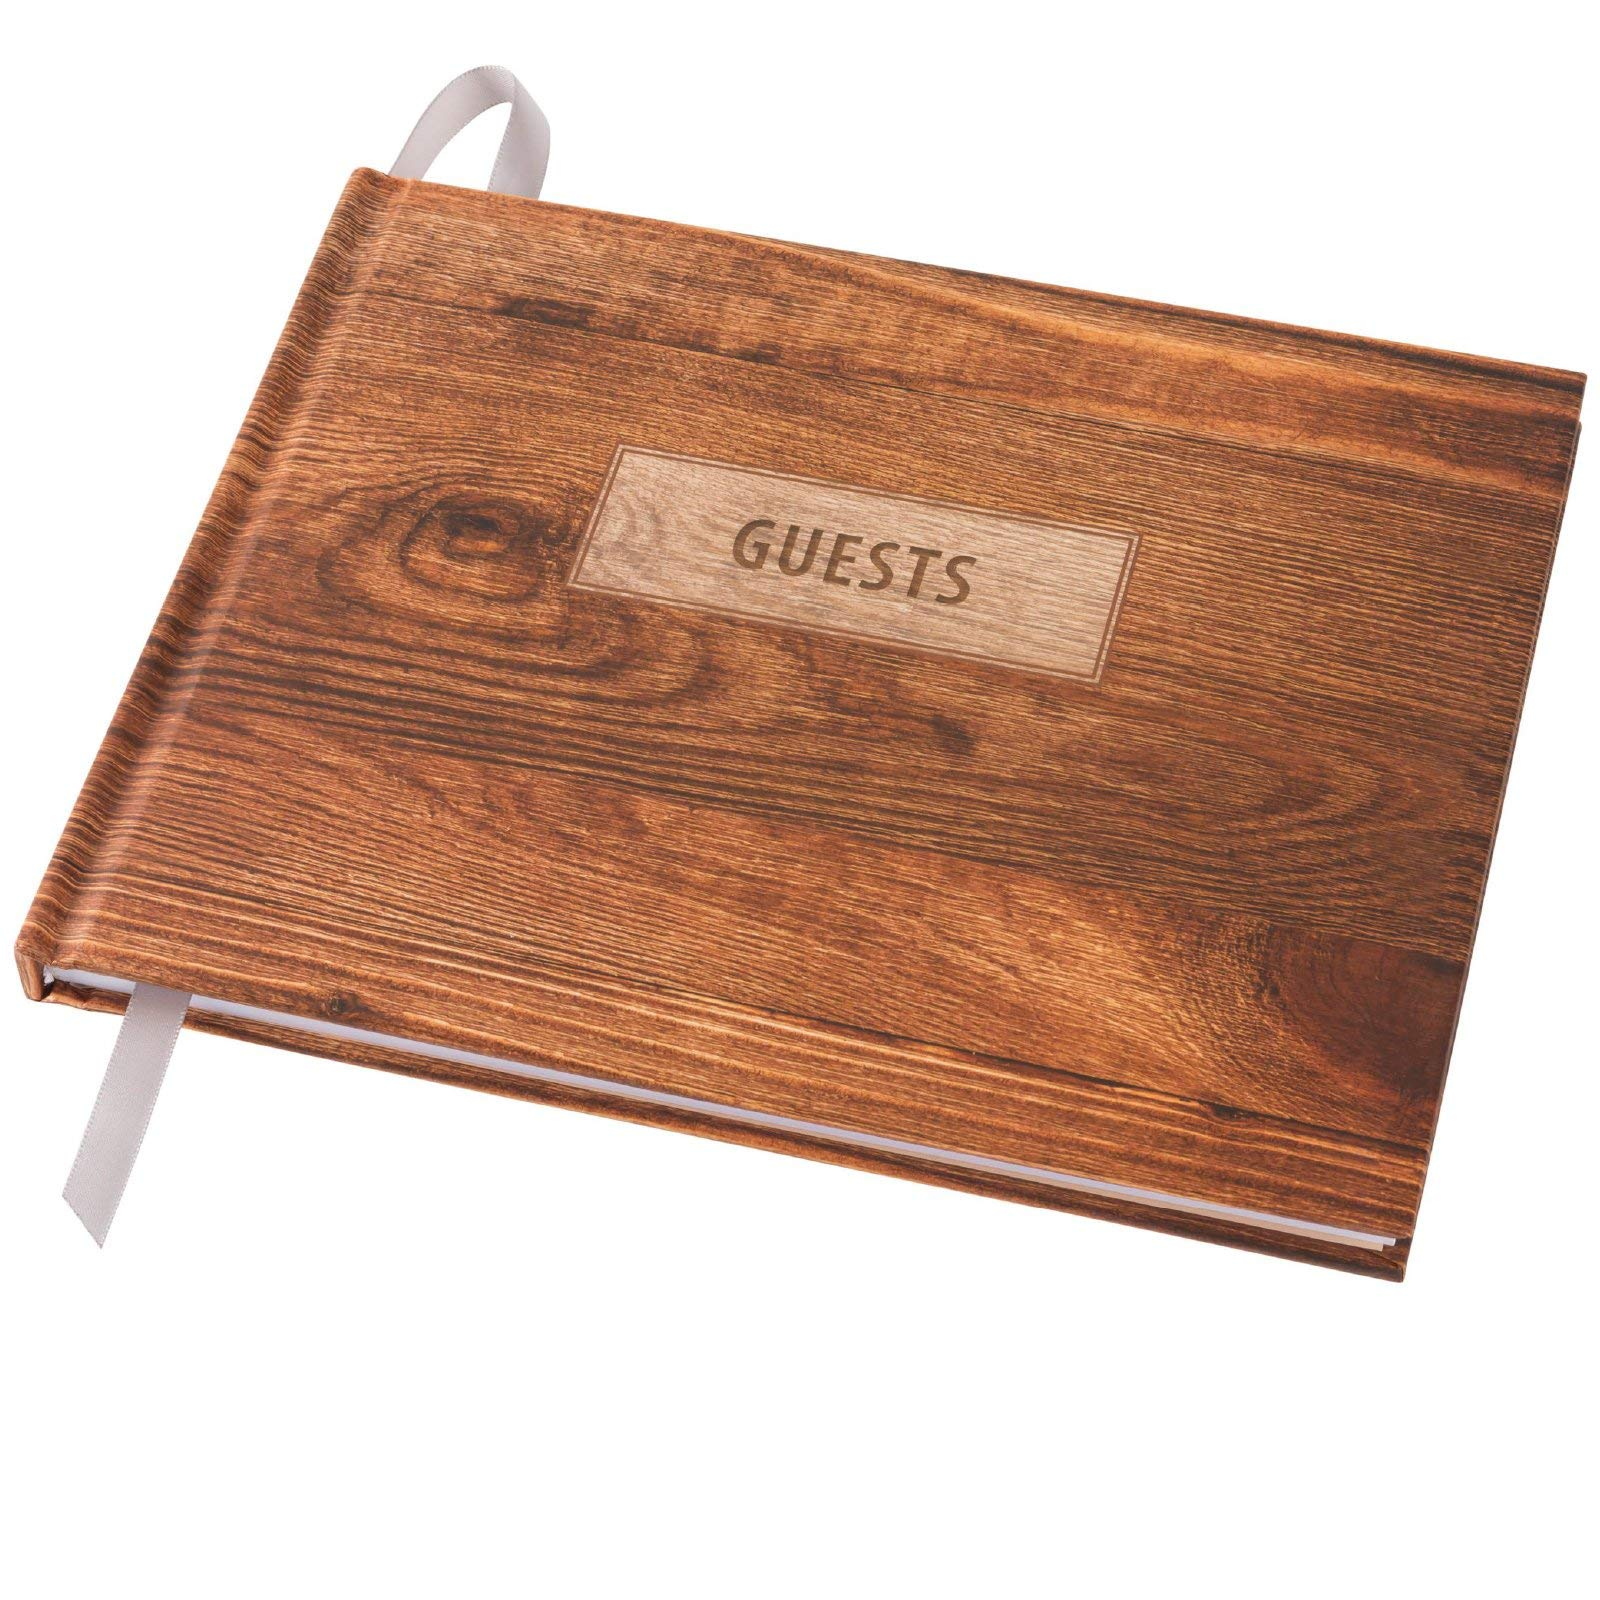 Wedding Guest Book 9''x7'' (Rustic Design) by Global Printed Products (Image #6)